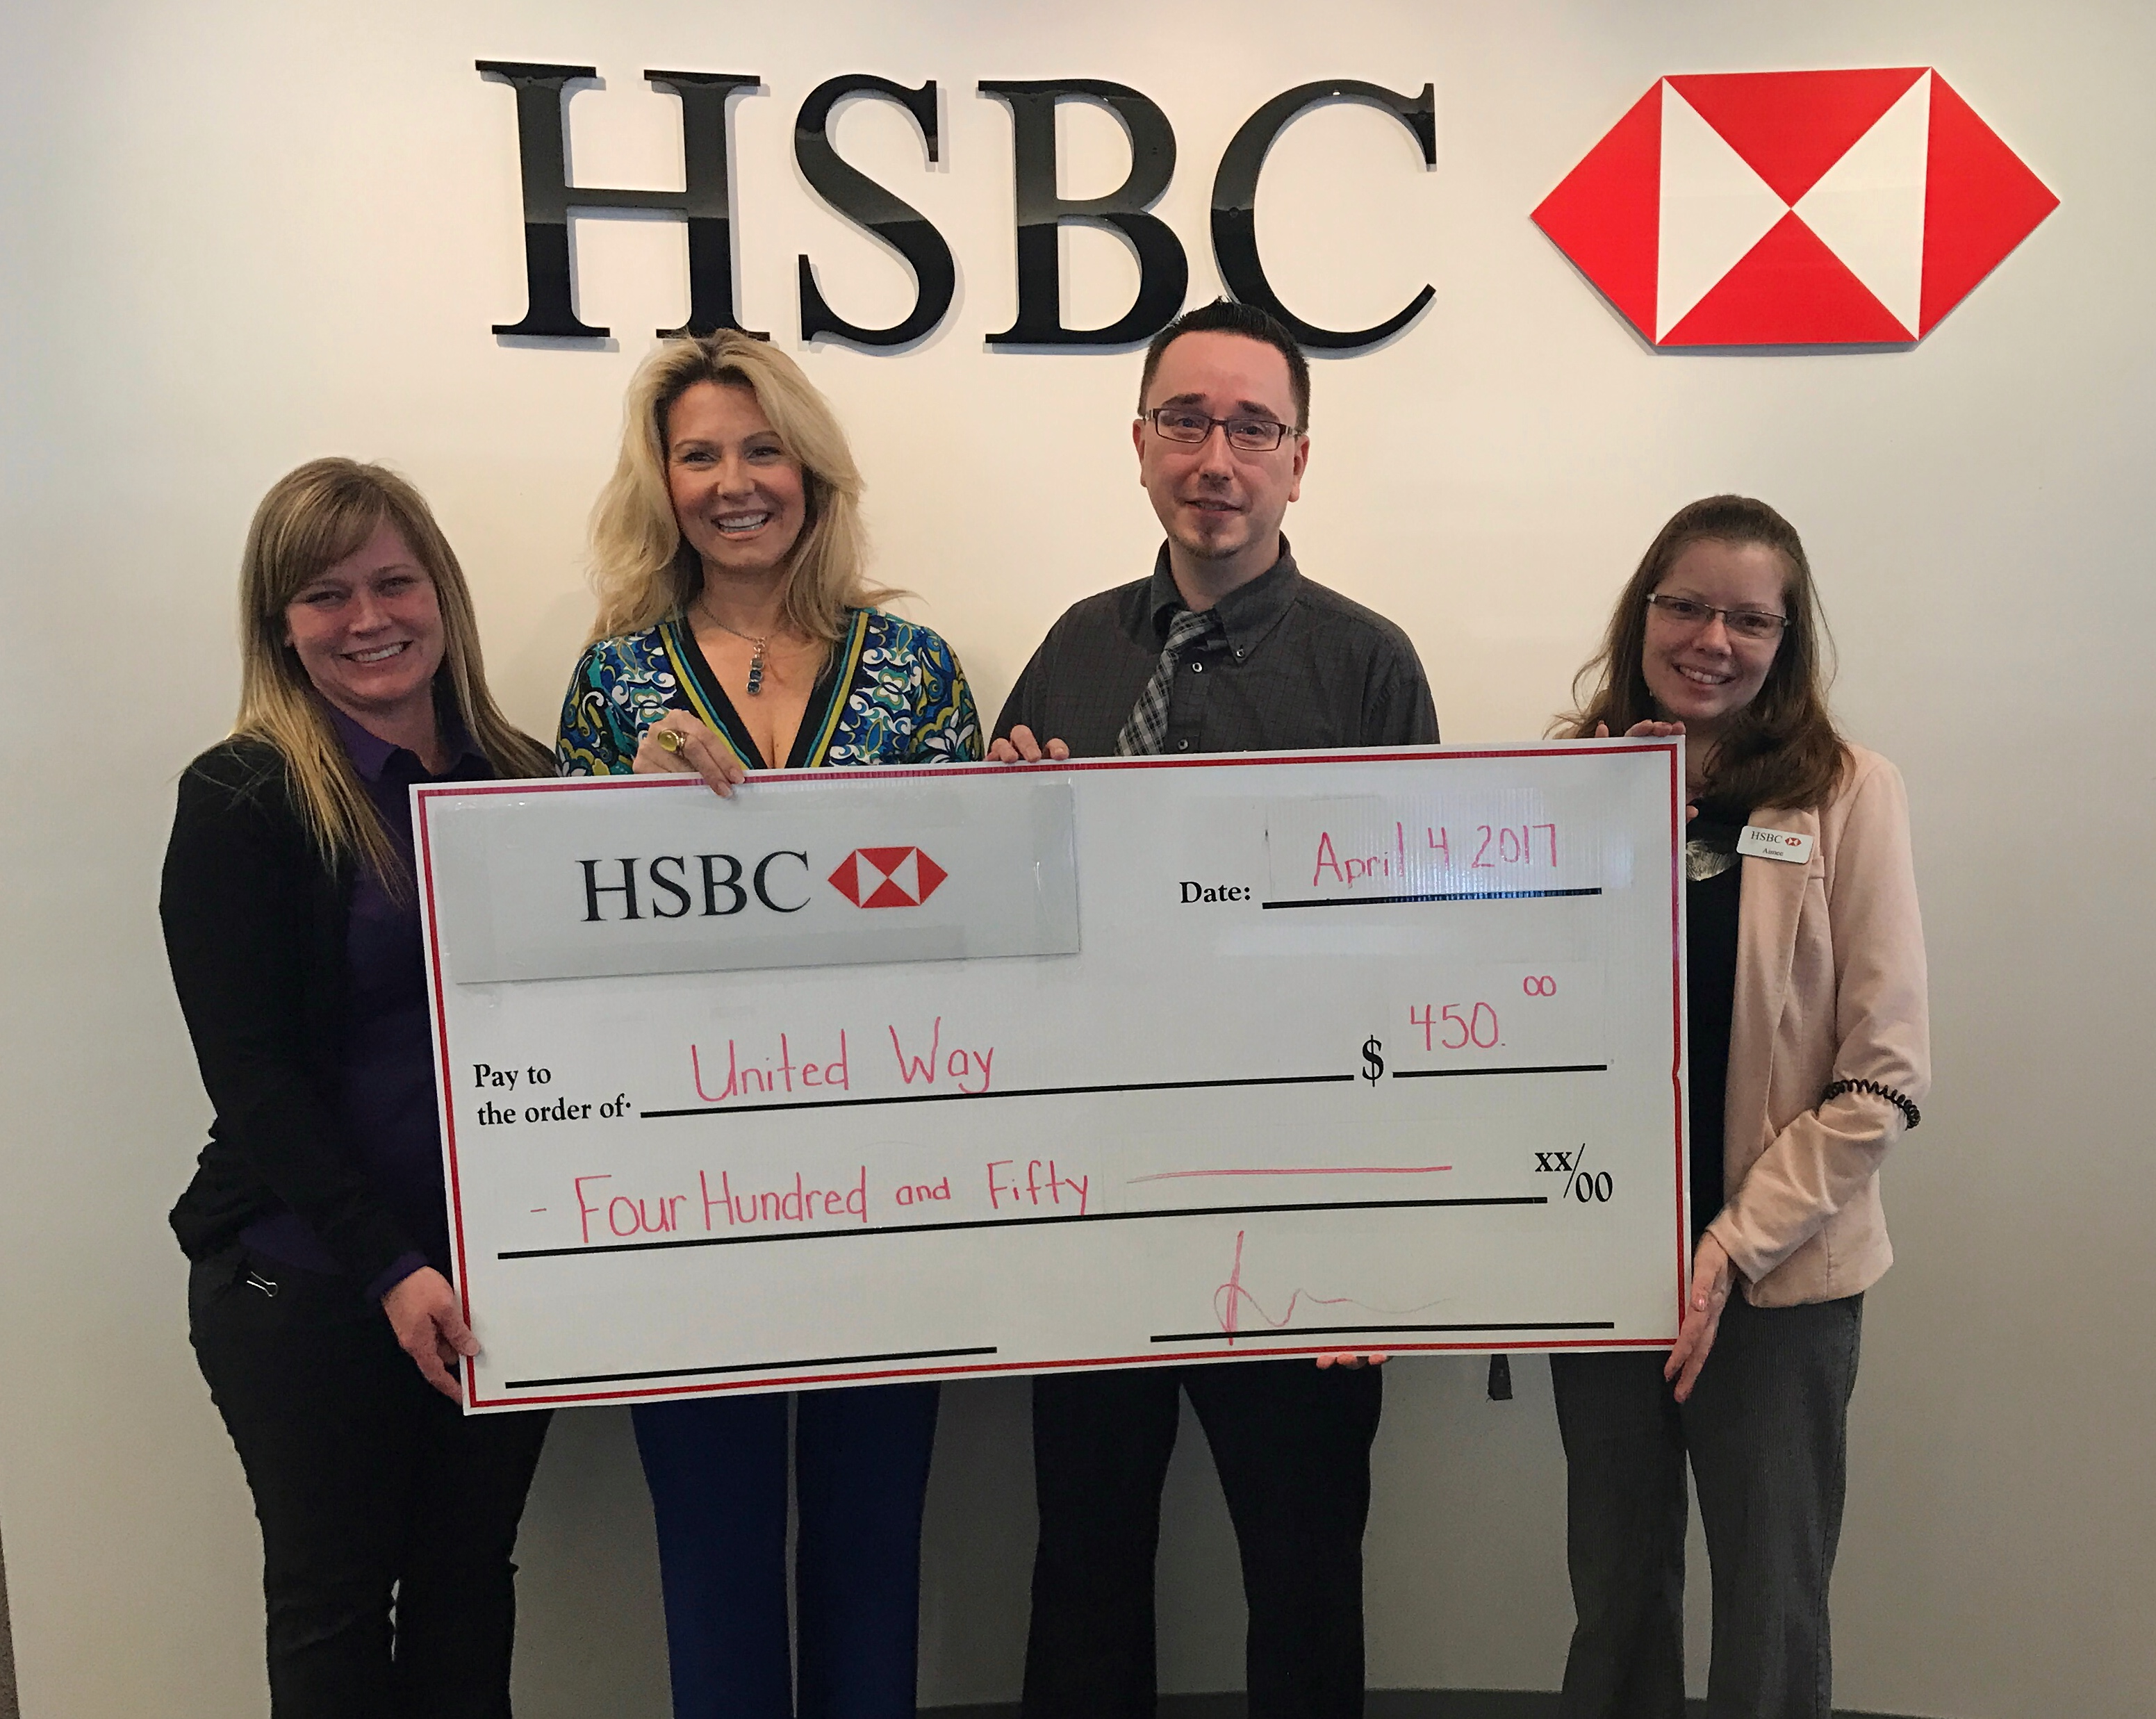 HSBC Prince George Sweetens Support of Local Issues